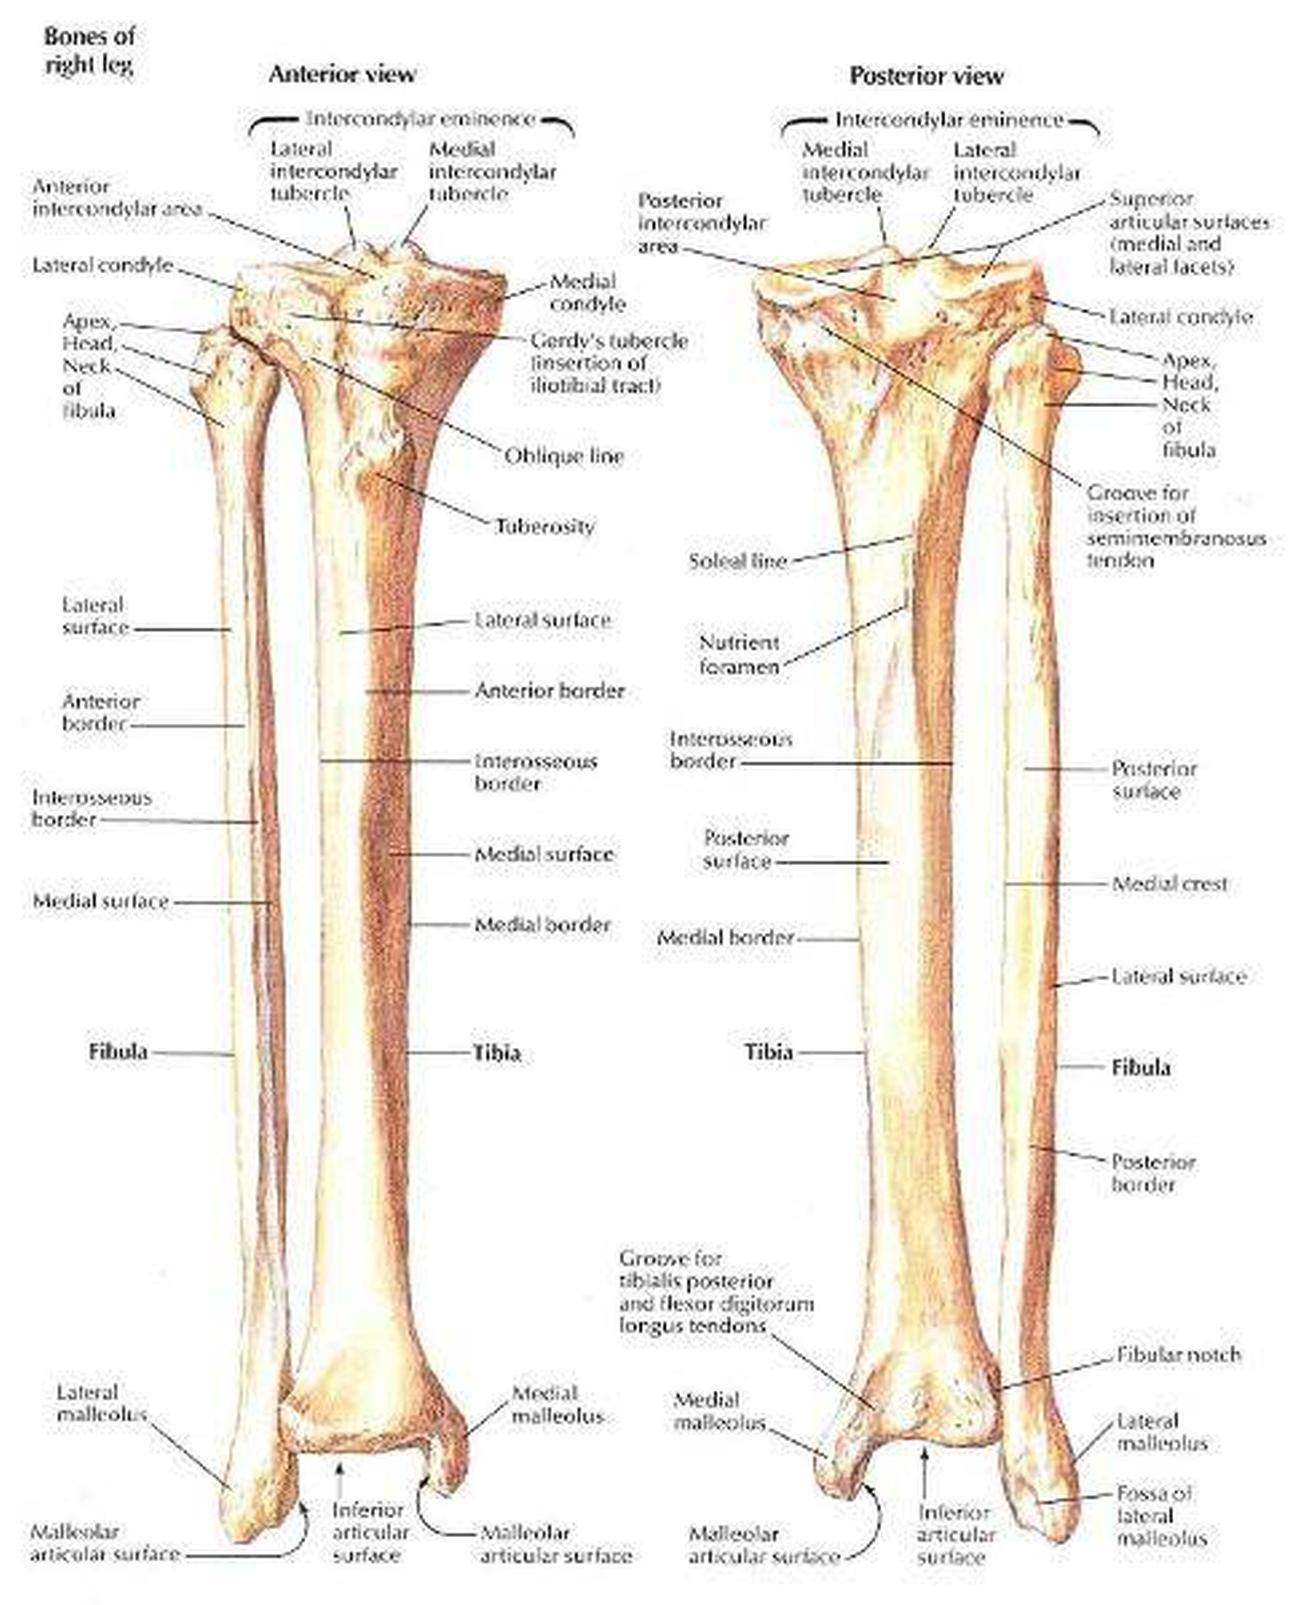 Pictures Of Anterior Crest Of The Tibia